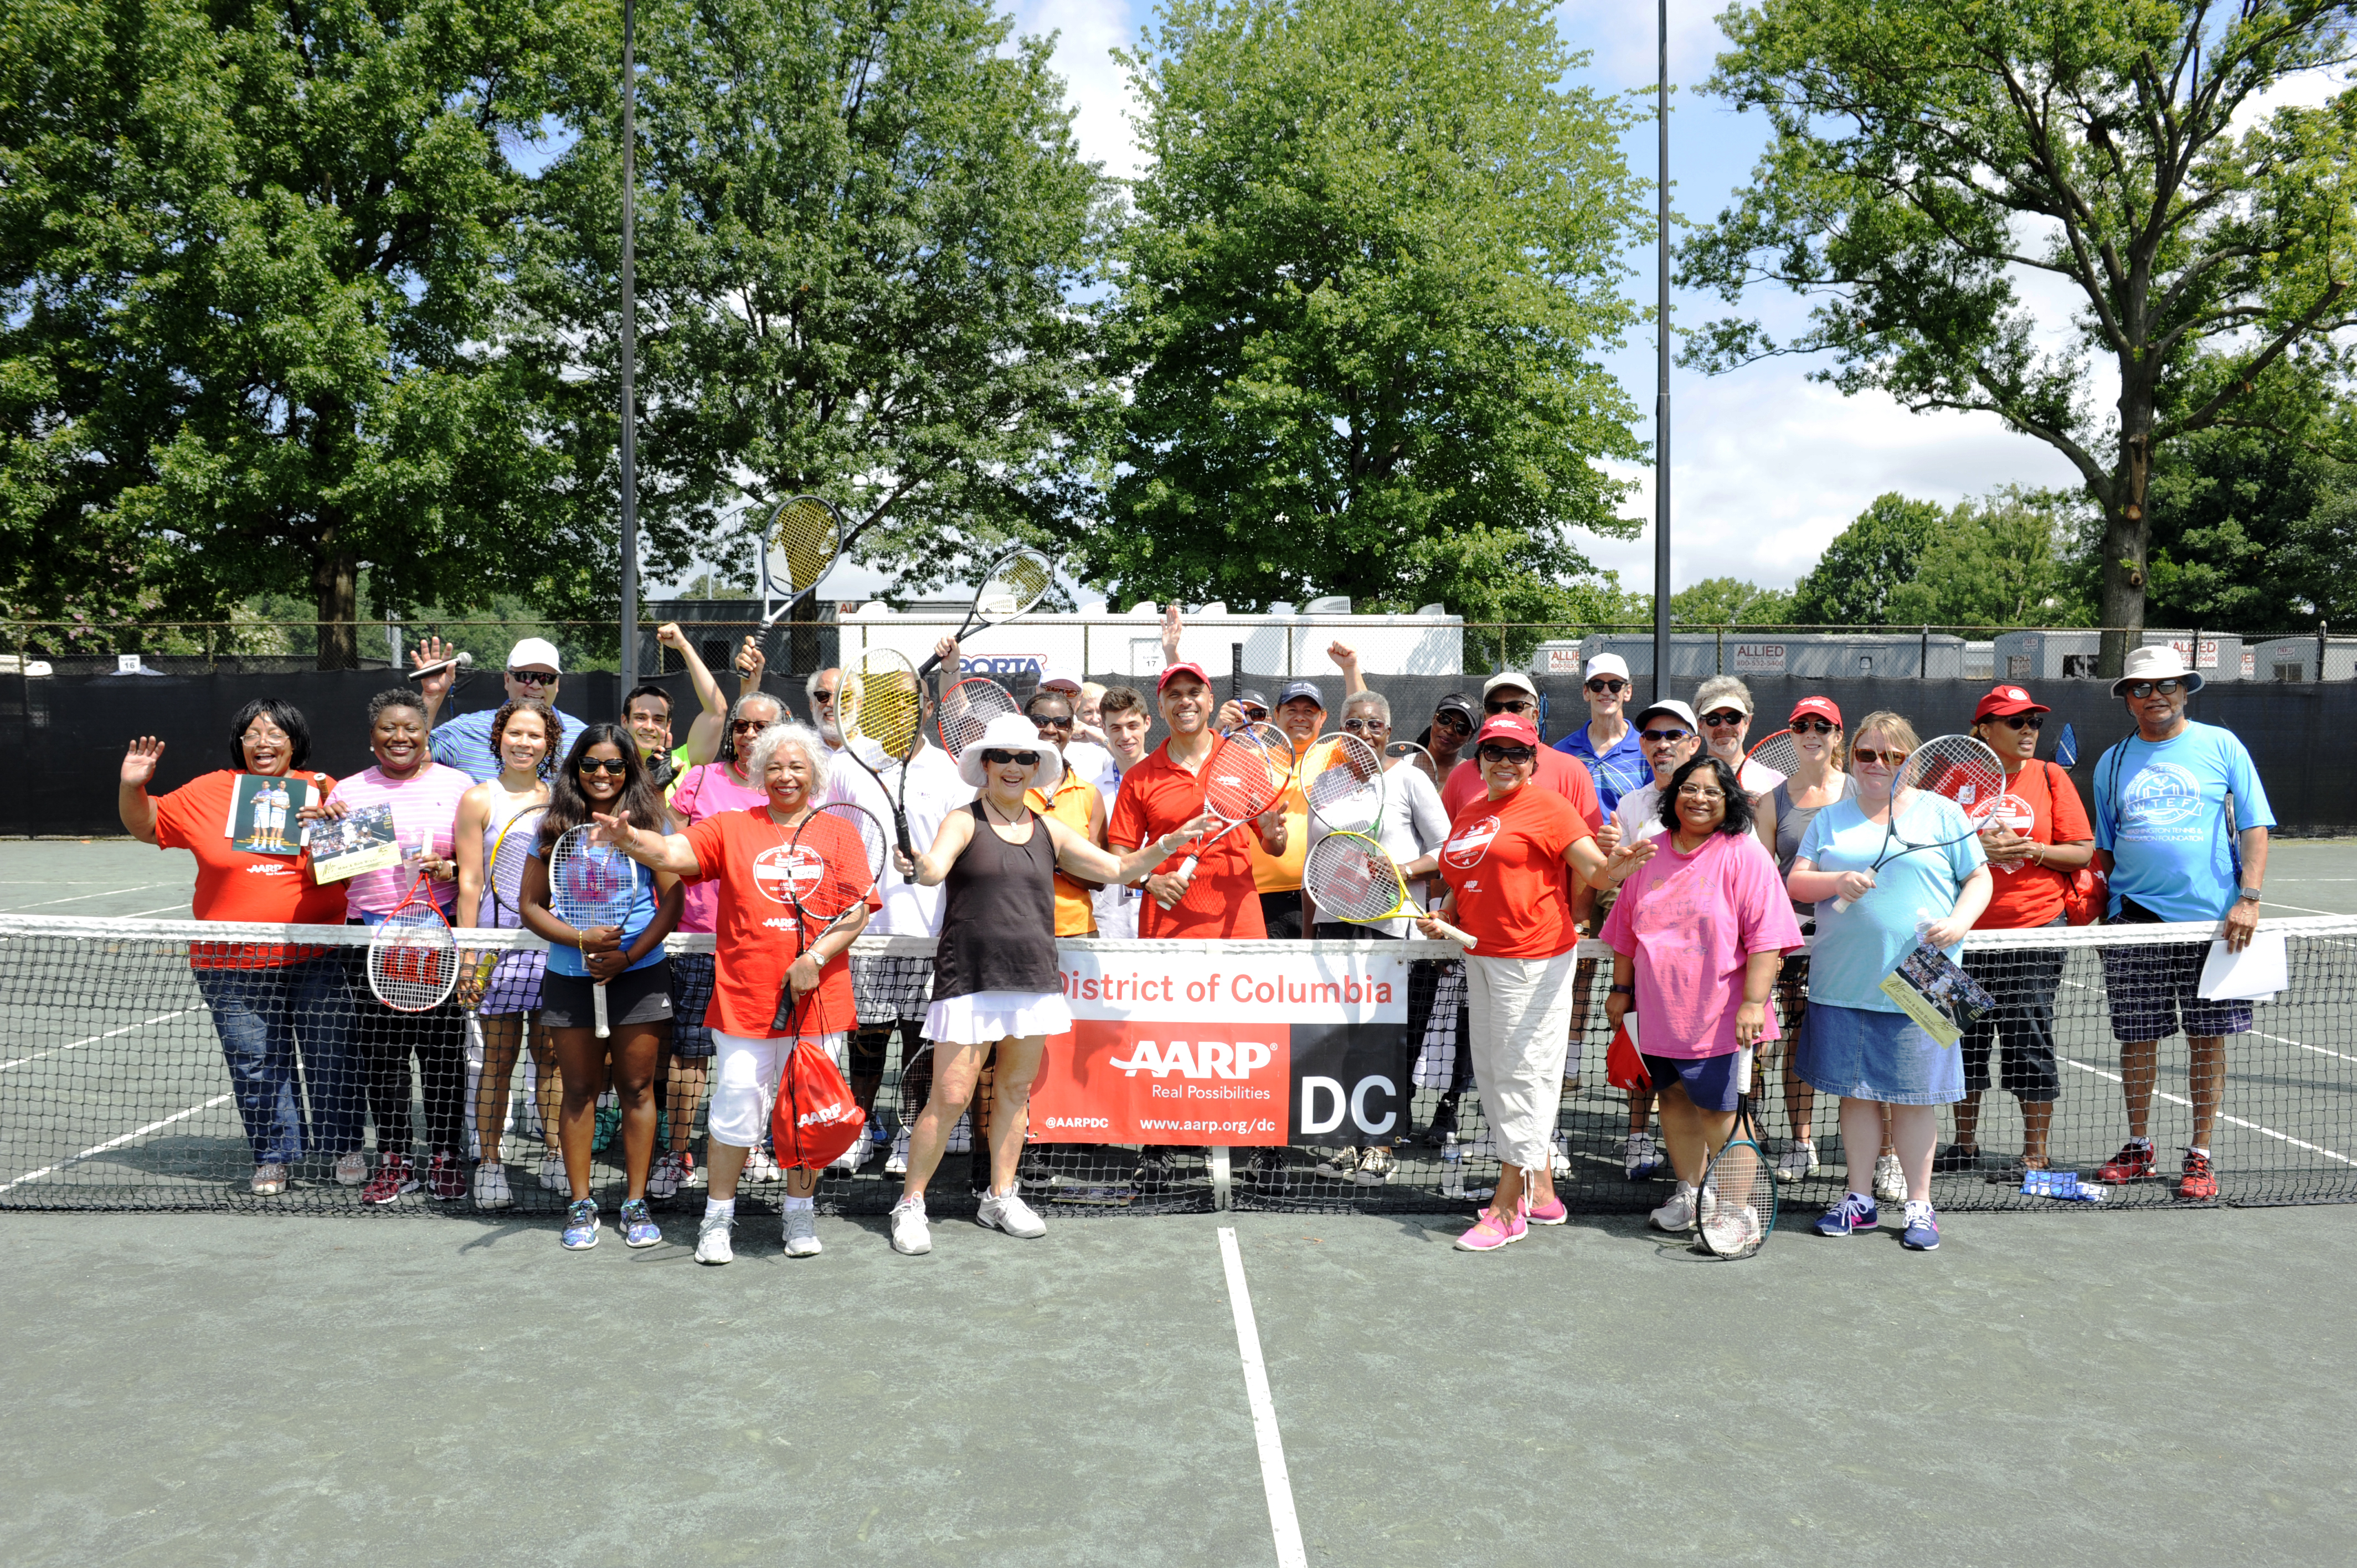 Tennis fun with AARP DC at the Citi Open